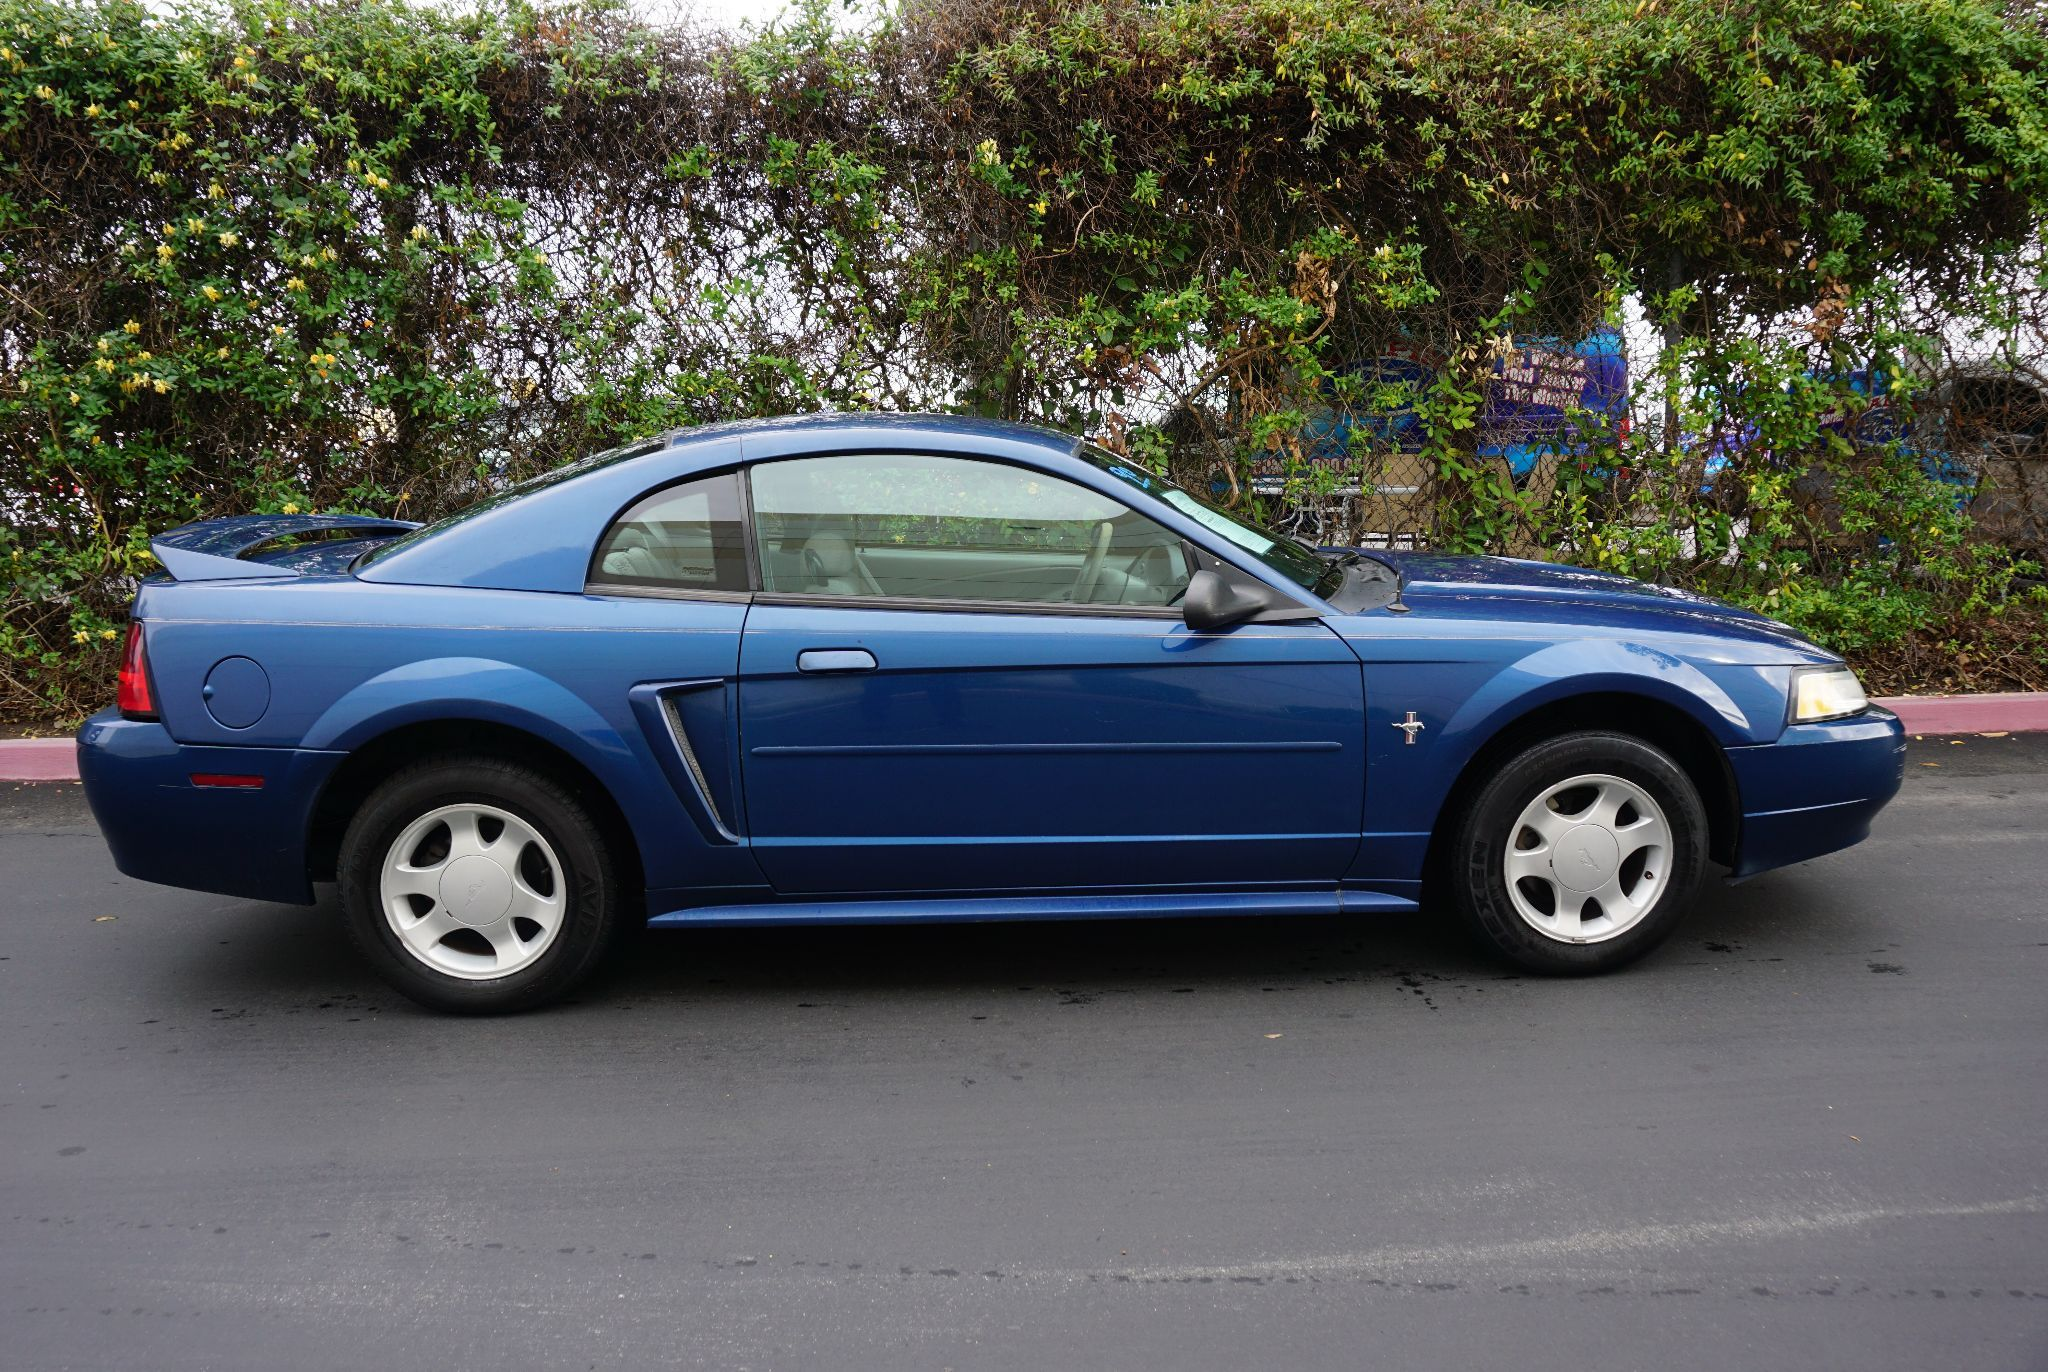 Used 2000 Ford Mustang GT Limited at City Cars Warehouse INC